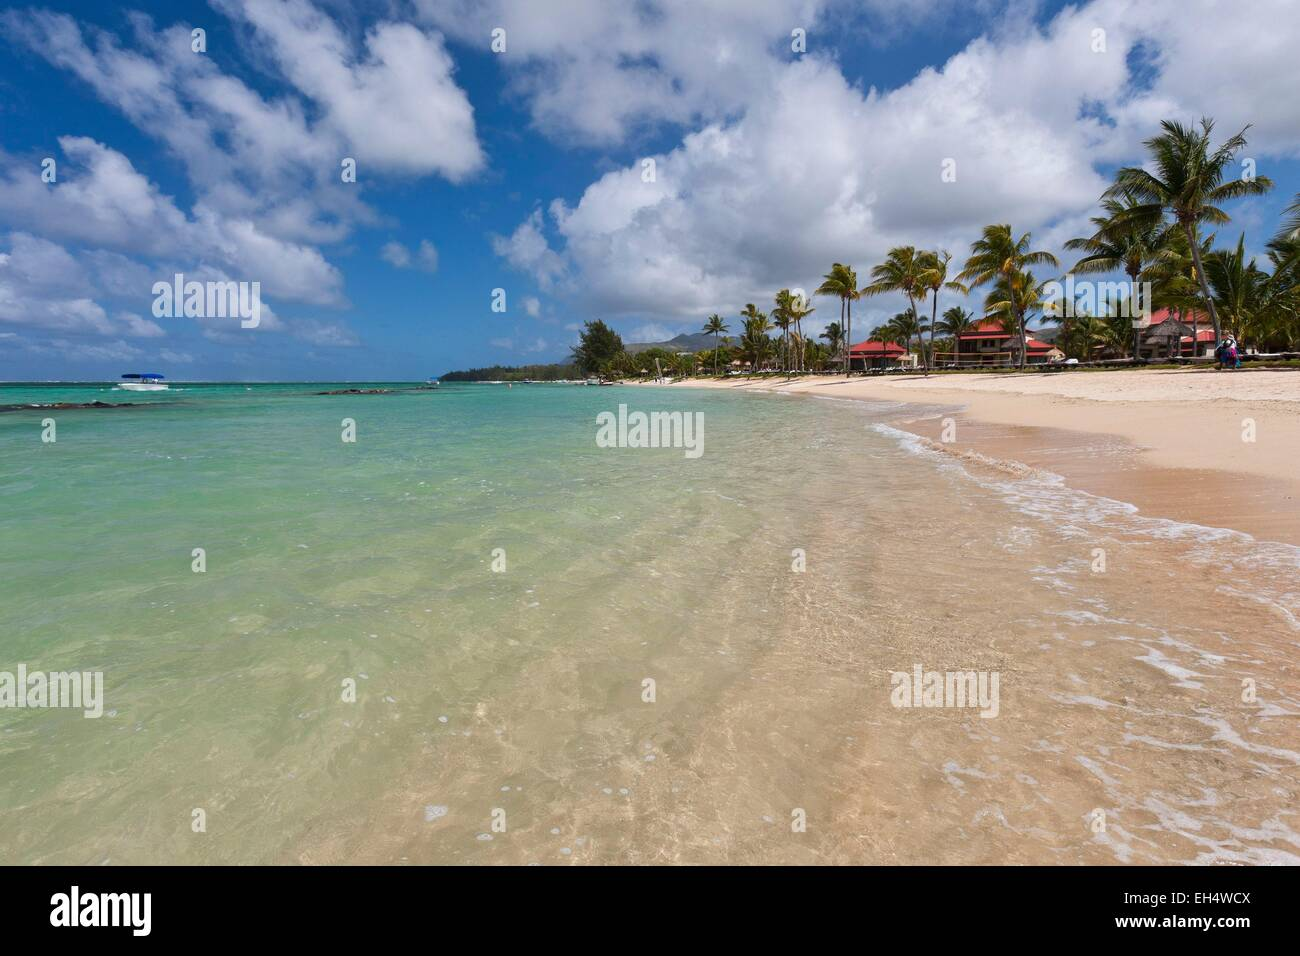 Mauritius, South West Coast, Savanne District, Bel Ombre beach - Stock Image